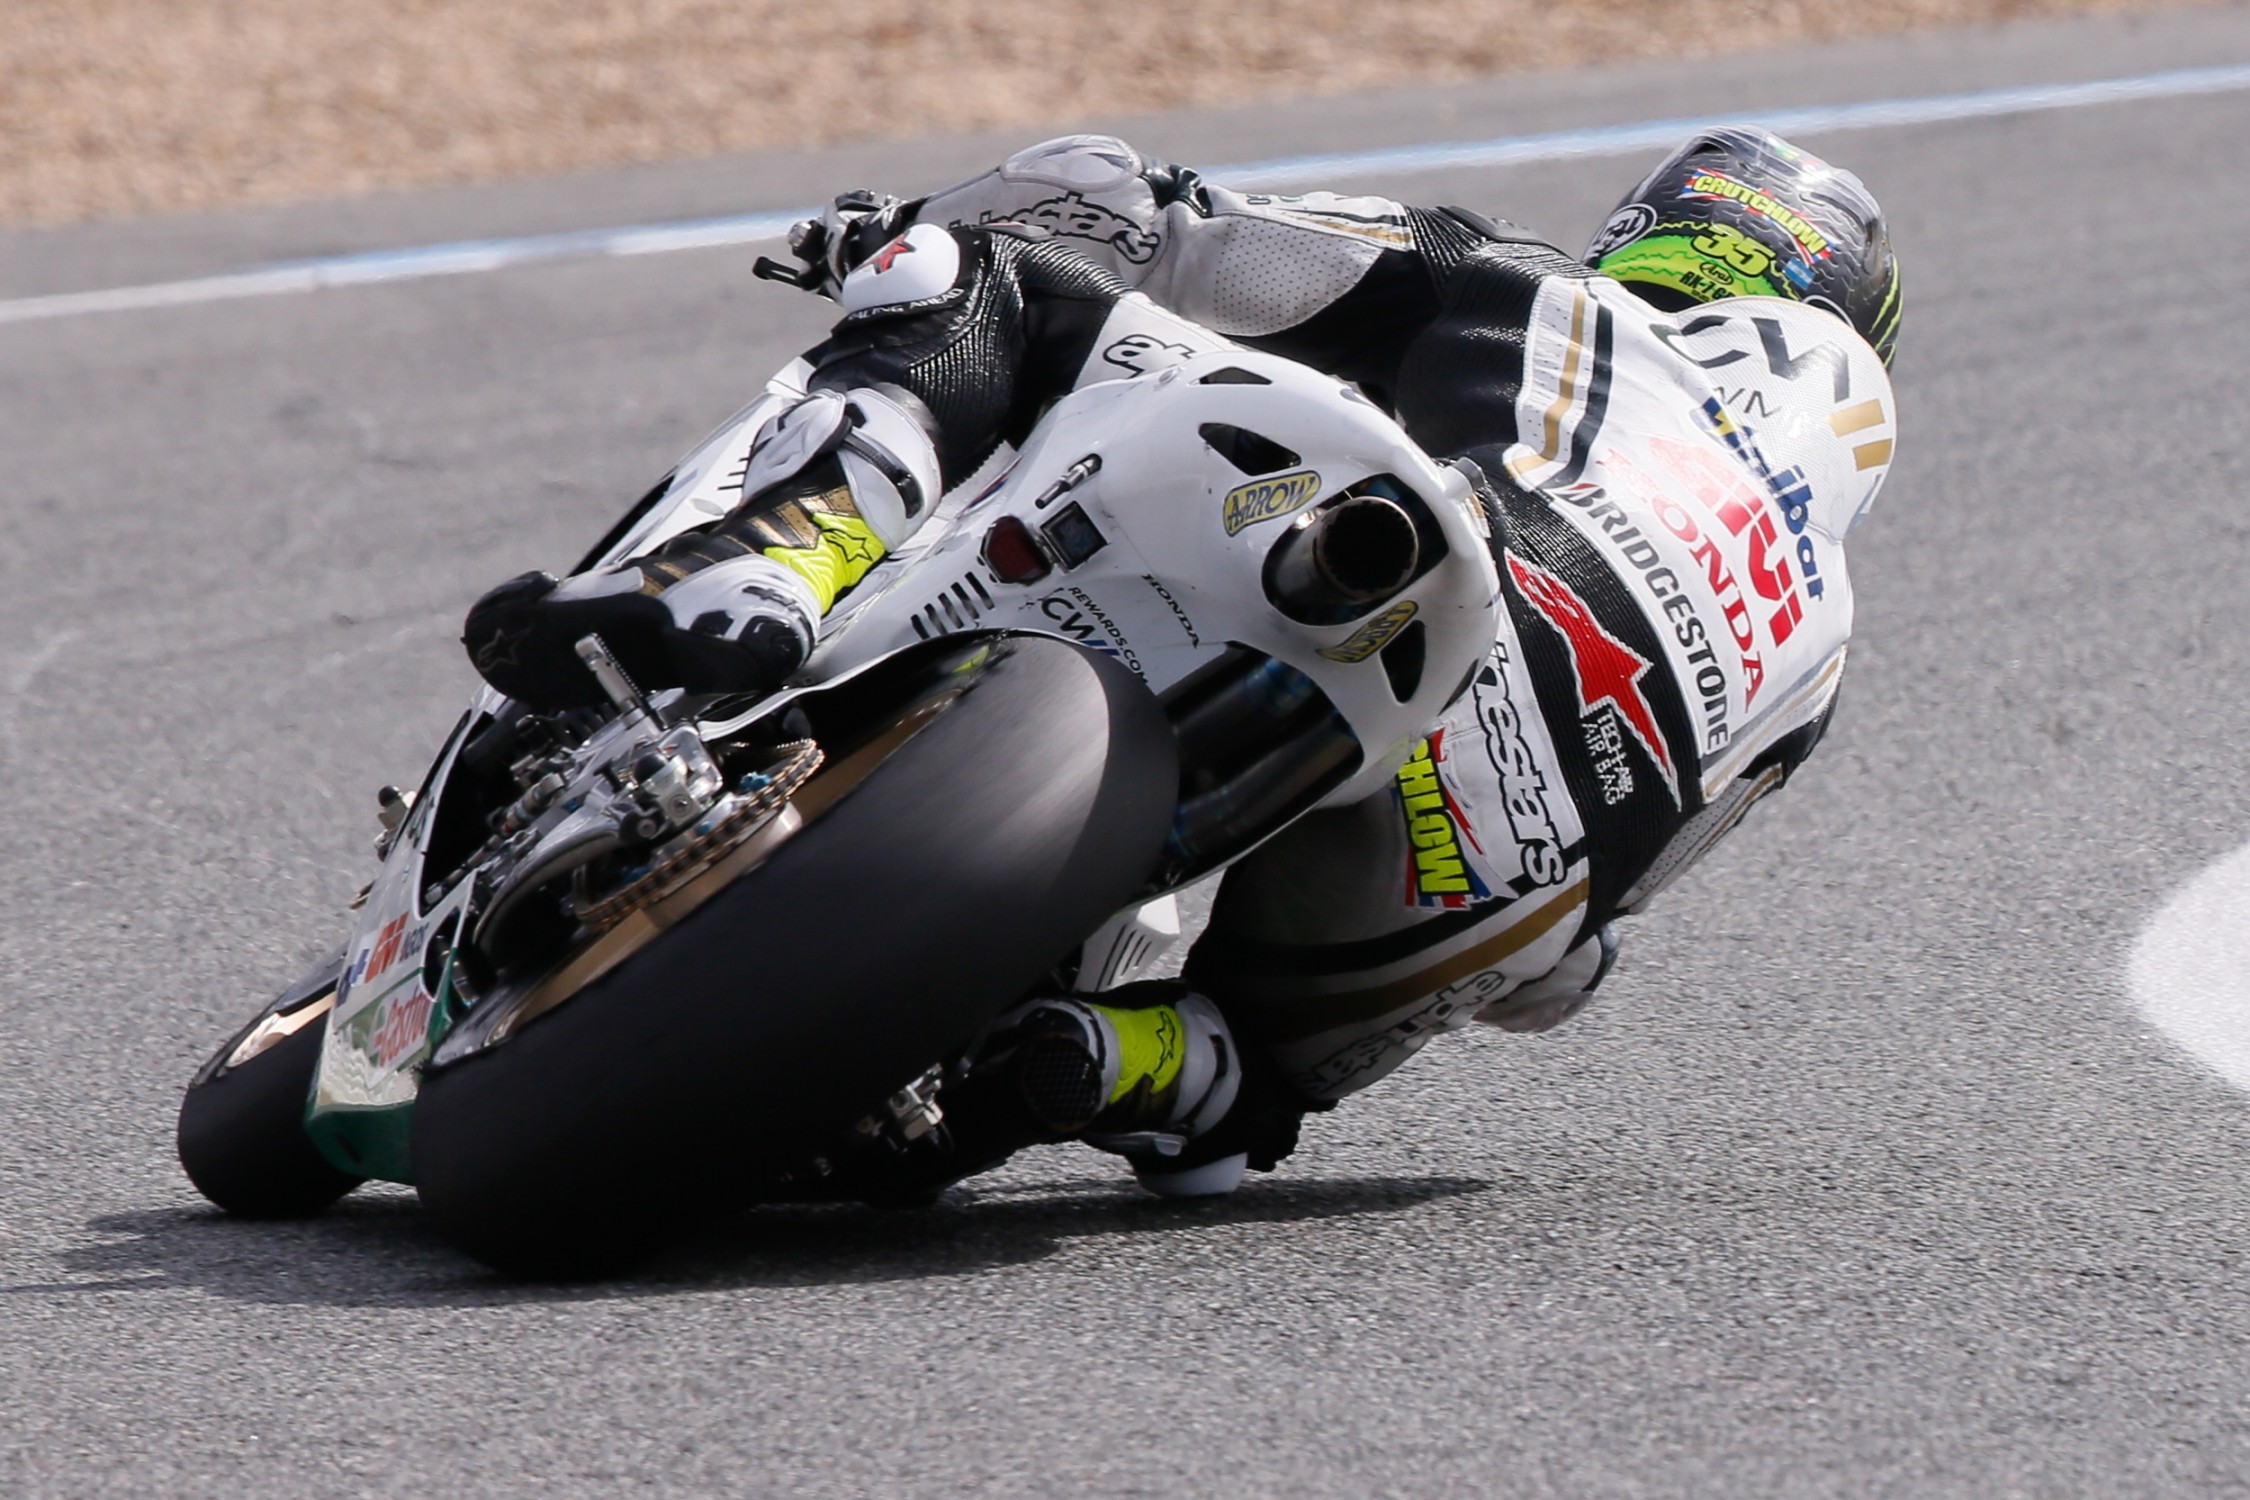 Cal Crutchlow Stays With Lcr Honda Team In 2016